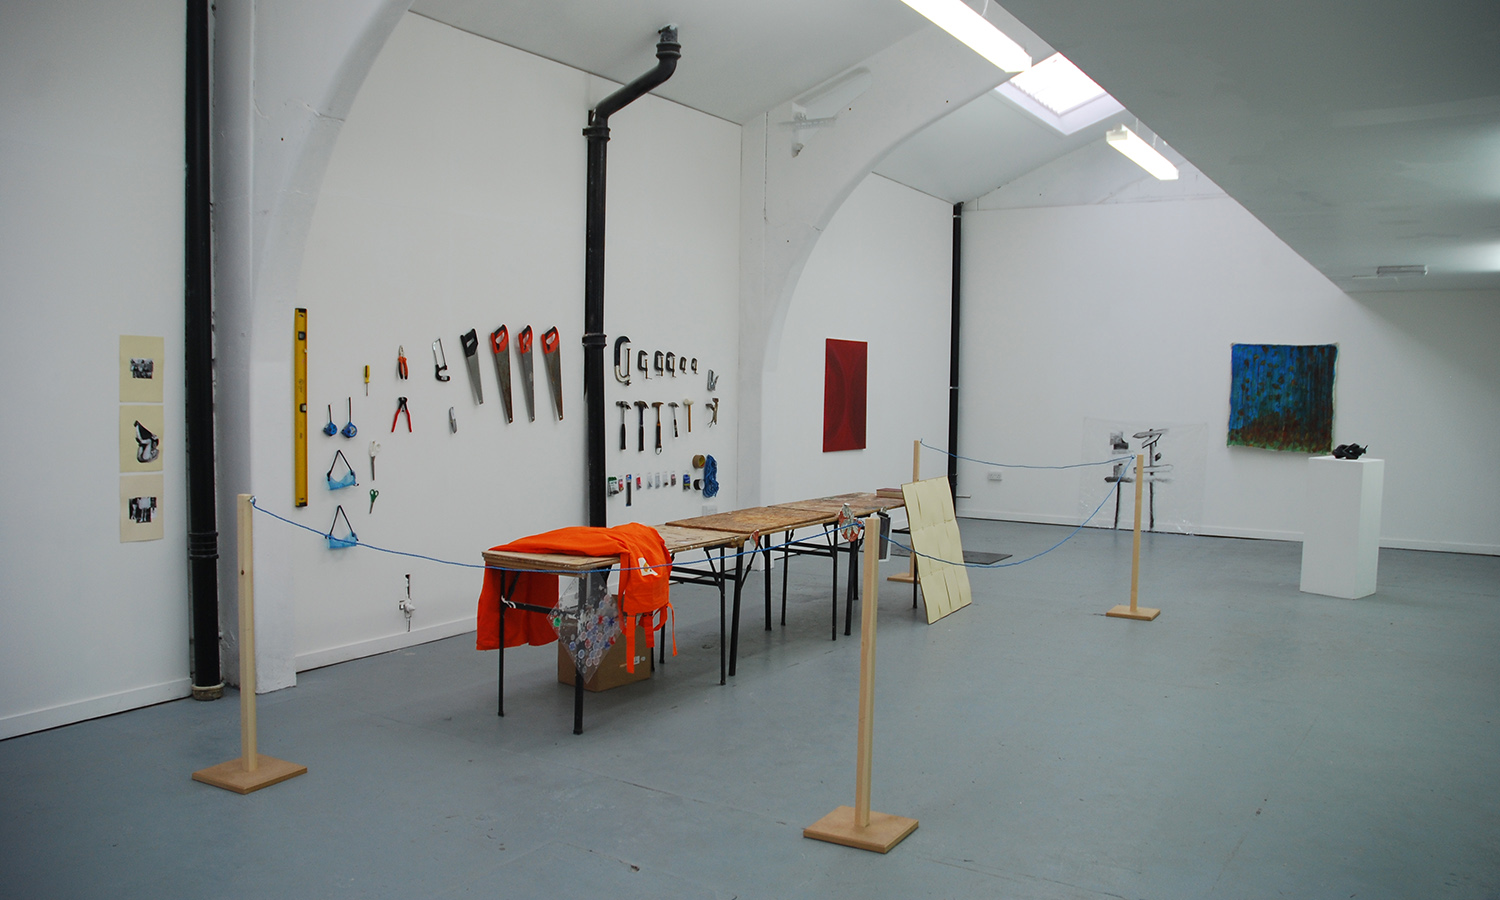 CUTS (before event), 2011